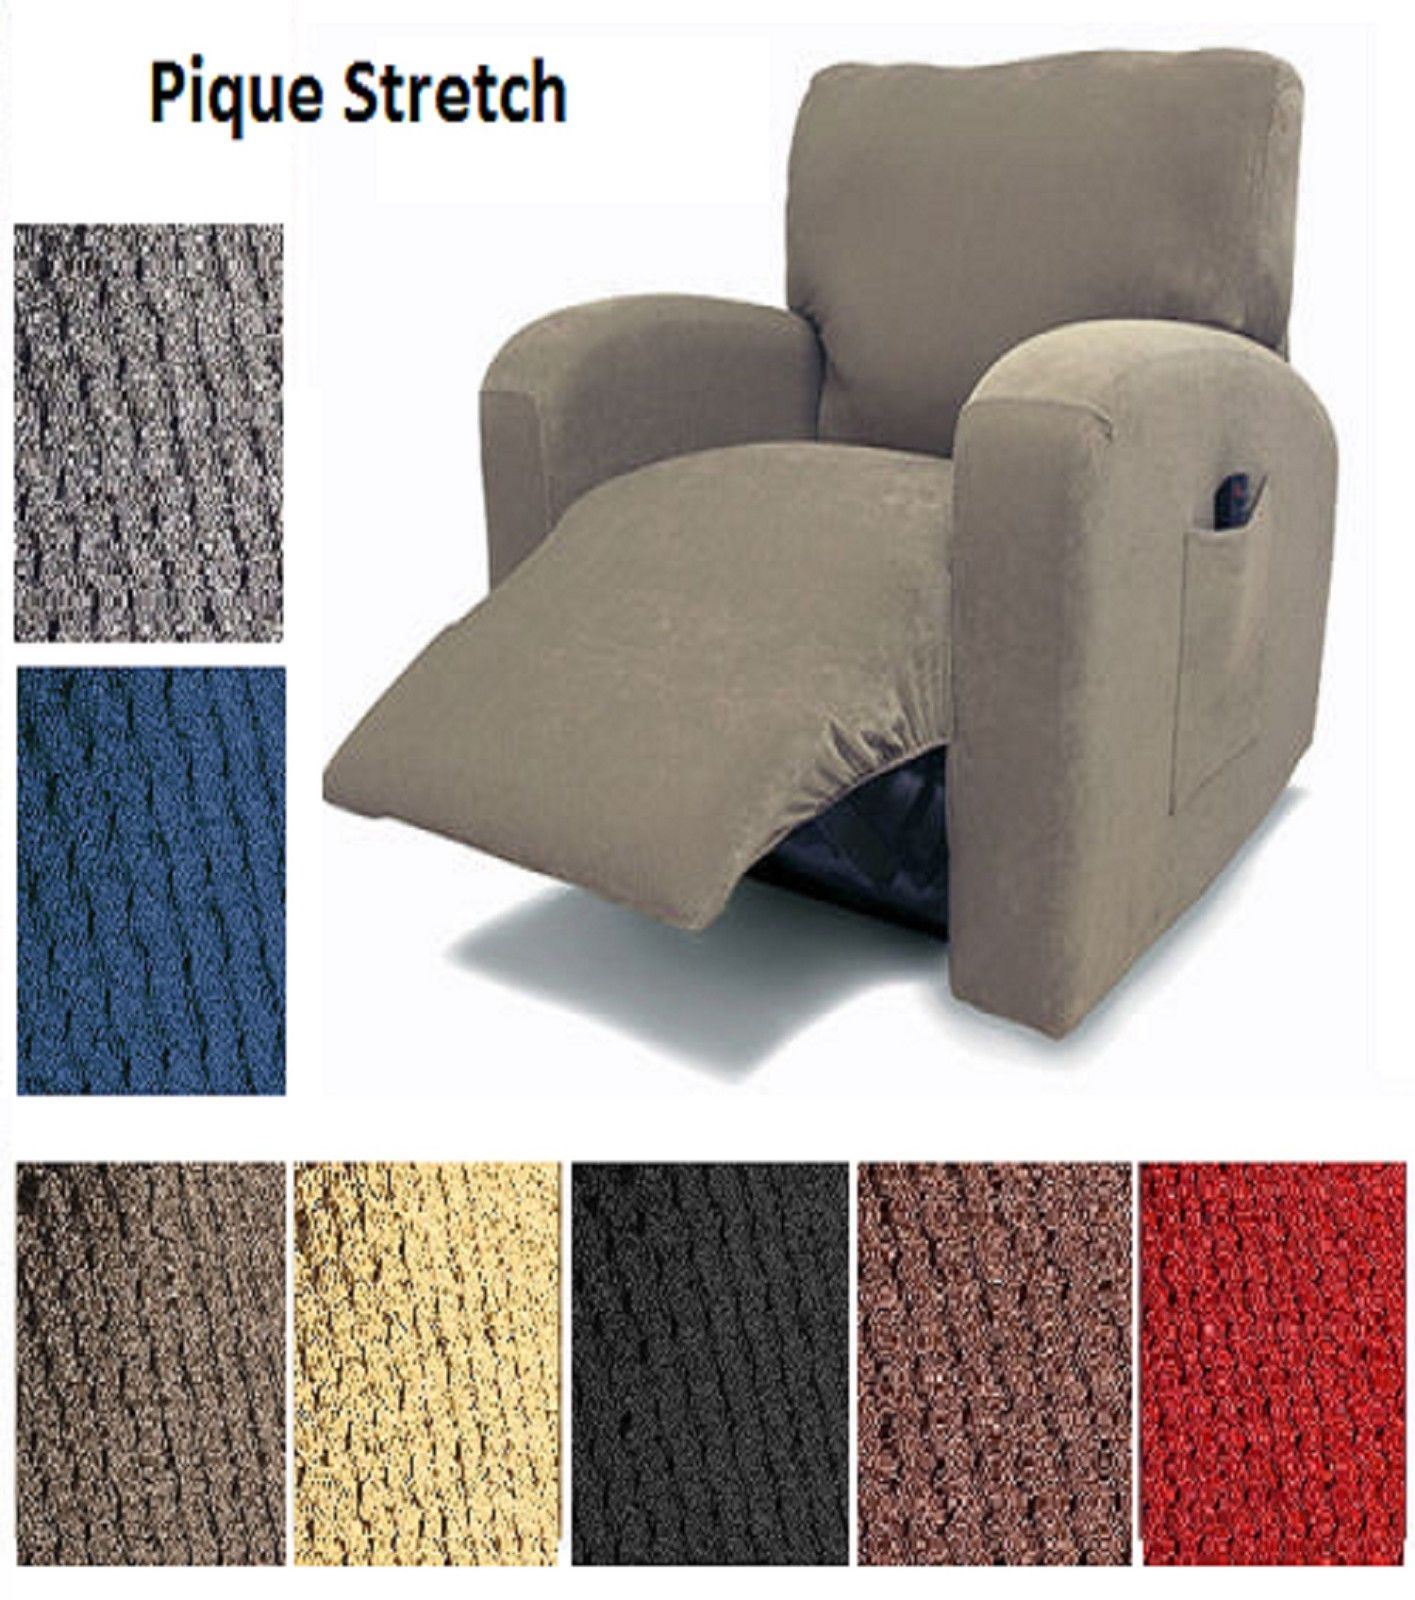 Furniture Pique Stretch Fit Furniture Chair Recliner Lazy Boy  # Muebles Reclinables Santo Domingo